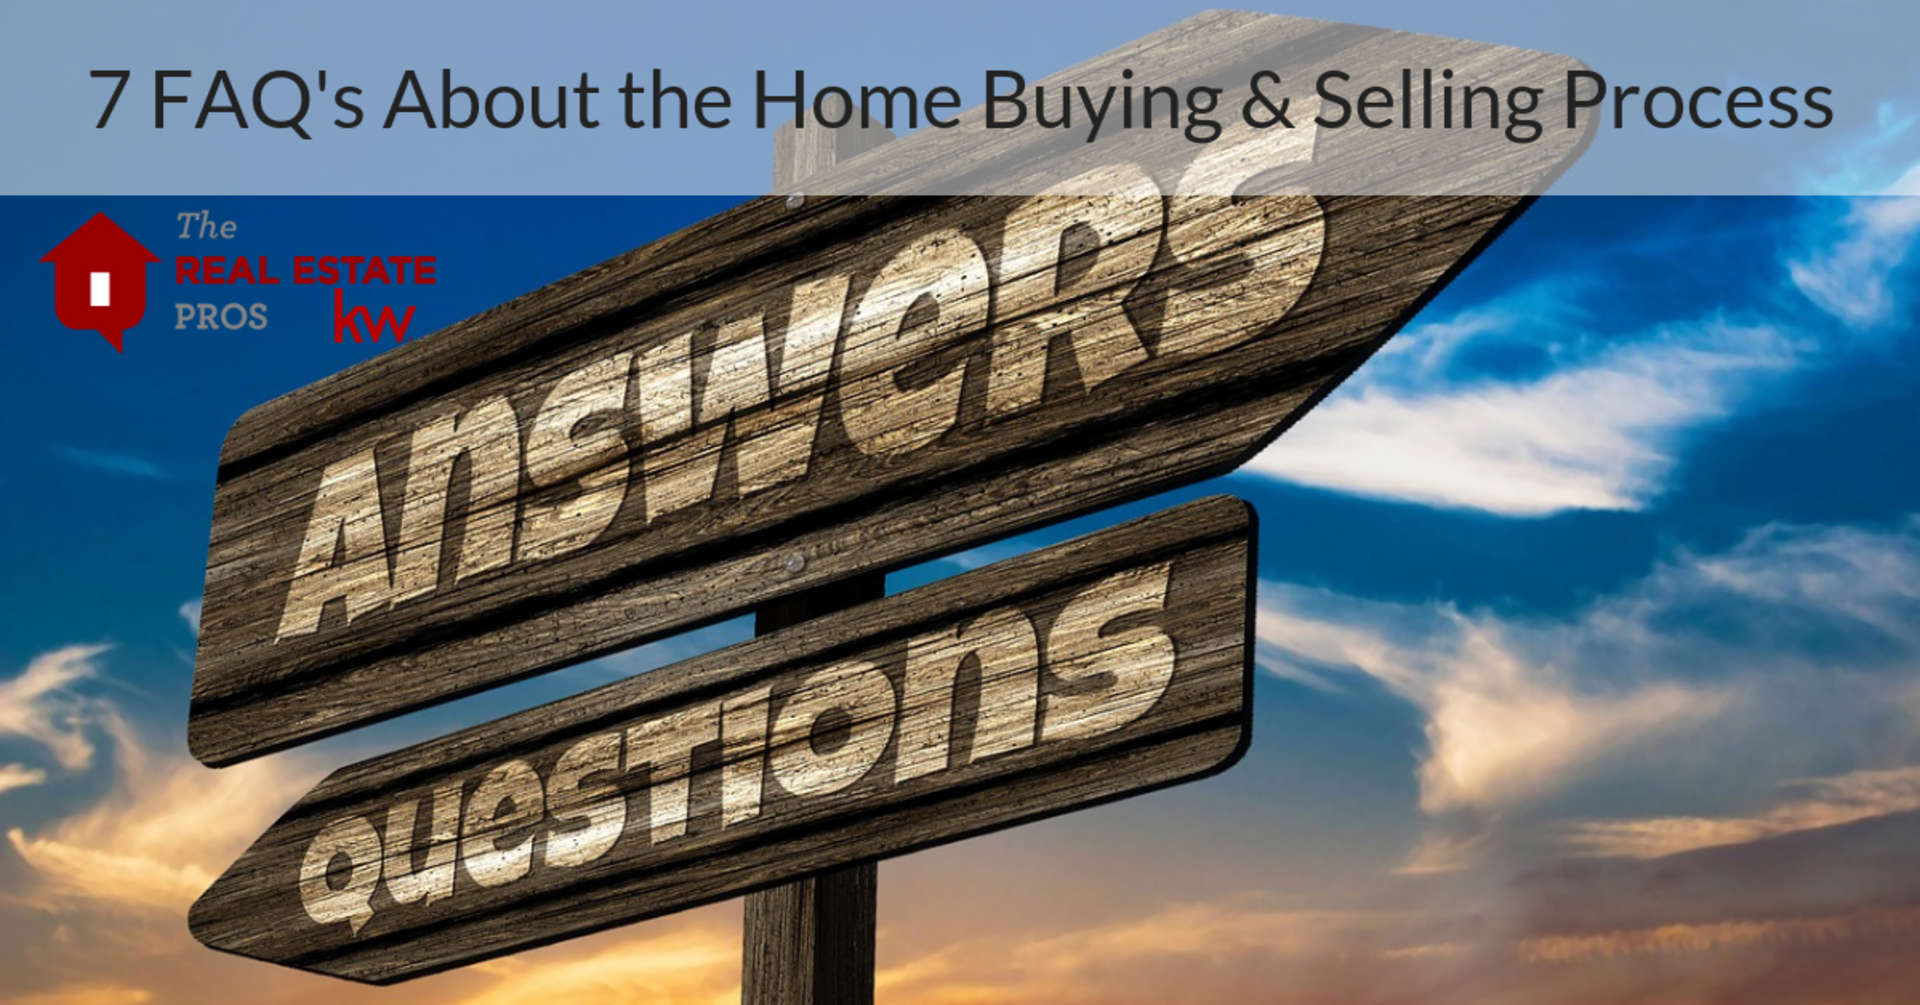 7 Frequently Asked Questions About the Home Buying & Selling Process